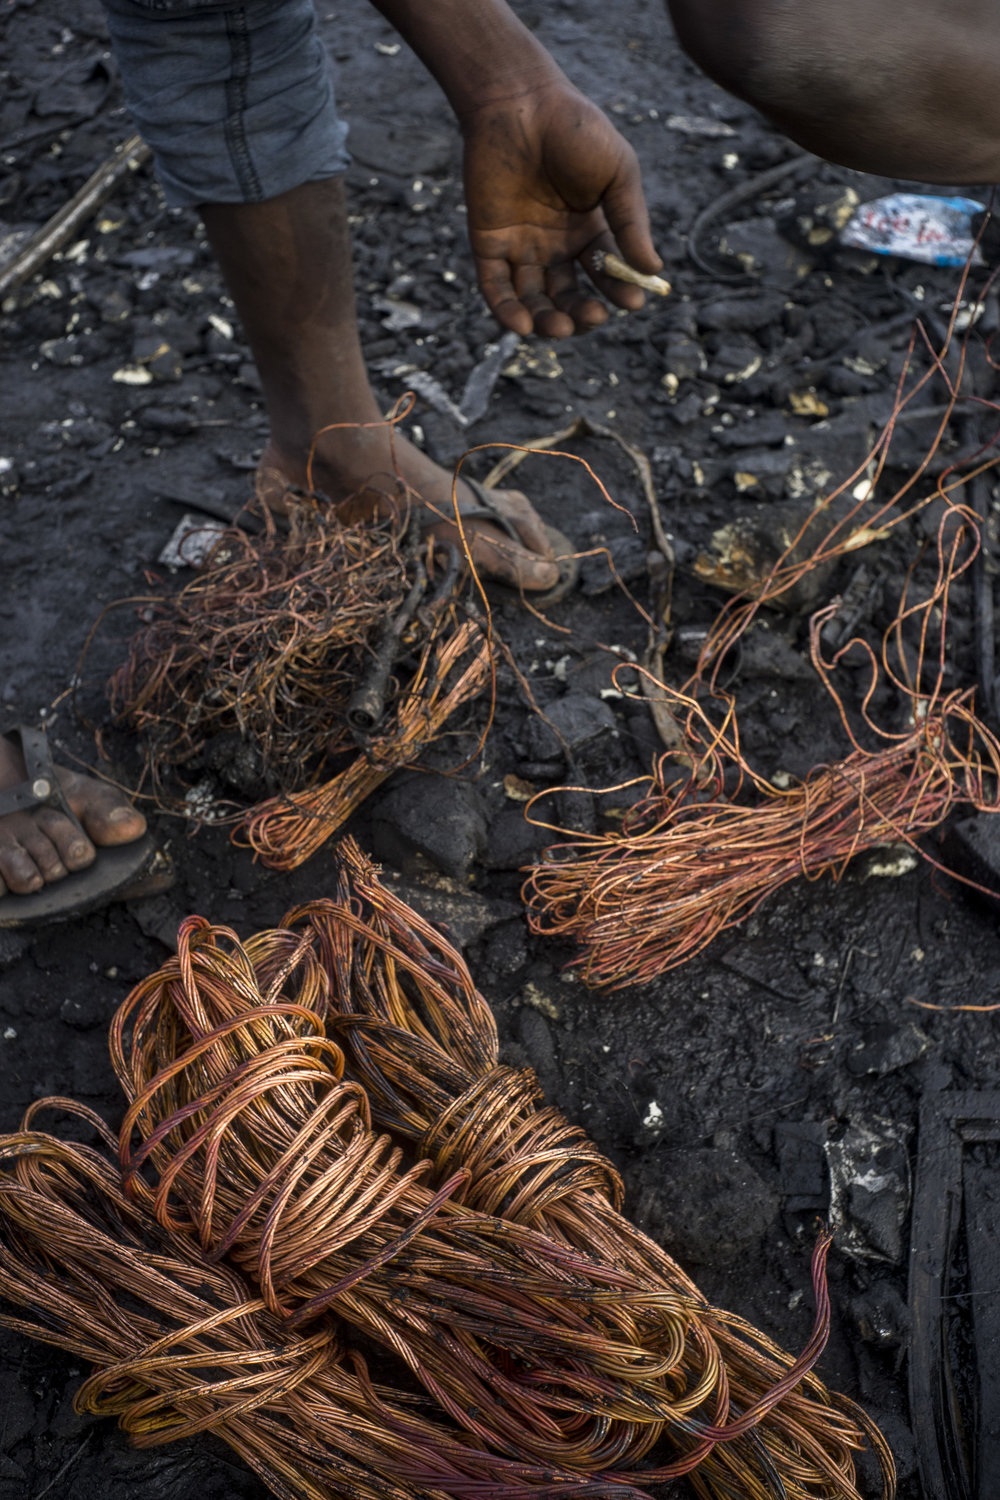 Awal sorts through bundled copper reclaimed from electronic waste. Awal cools the metal he just finished burning.